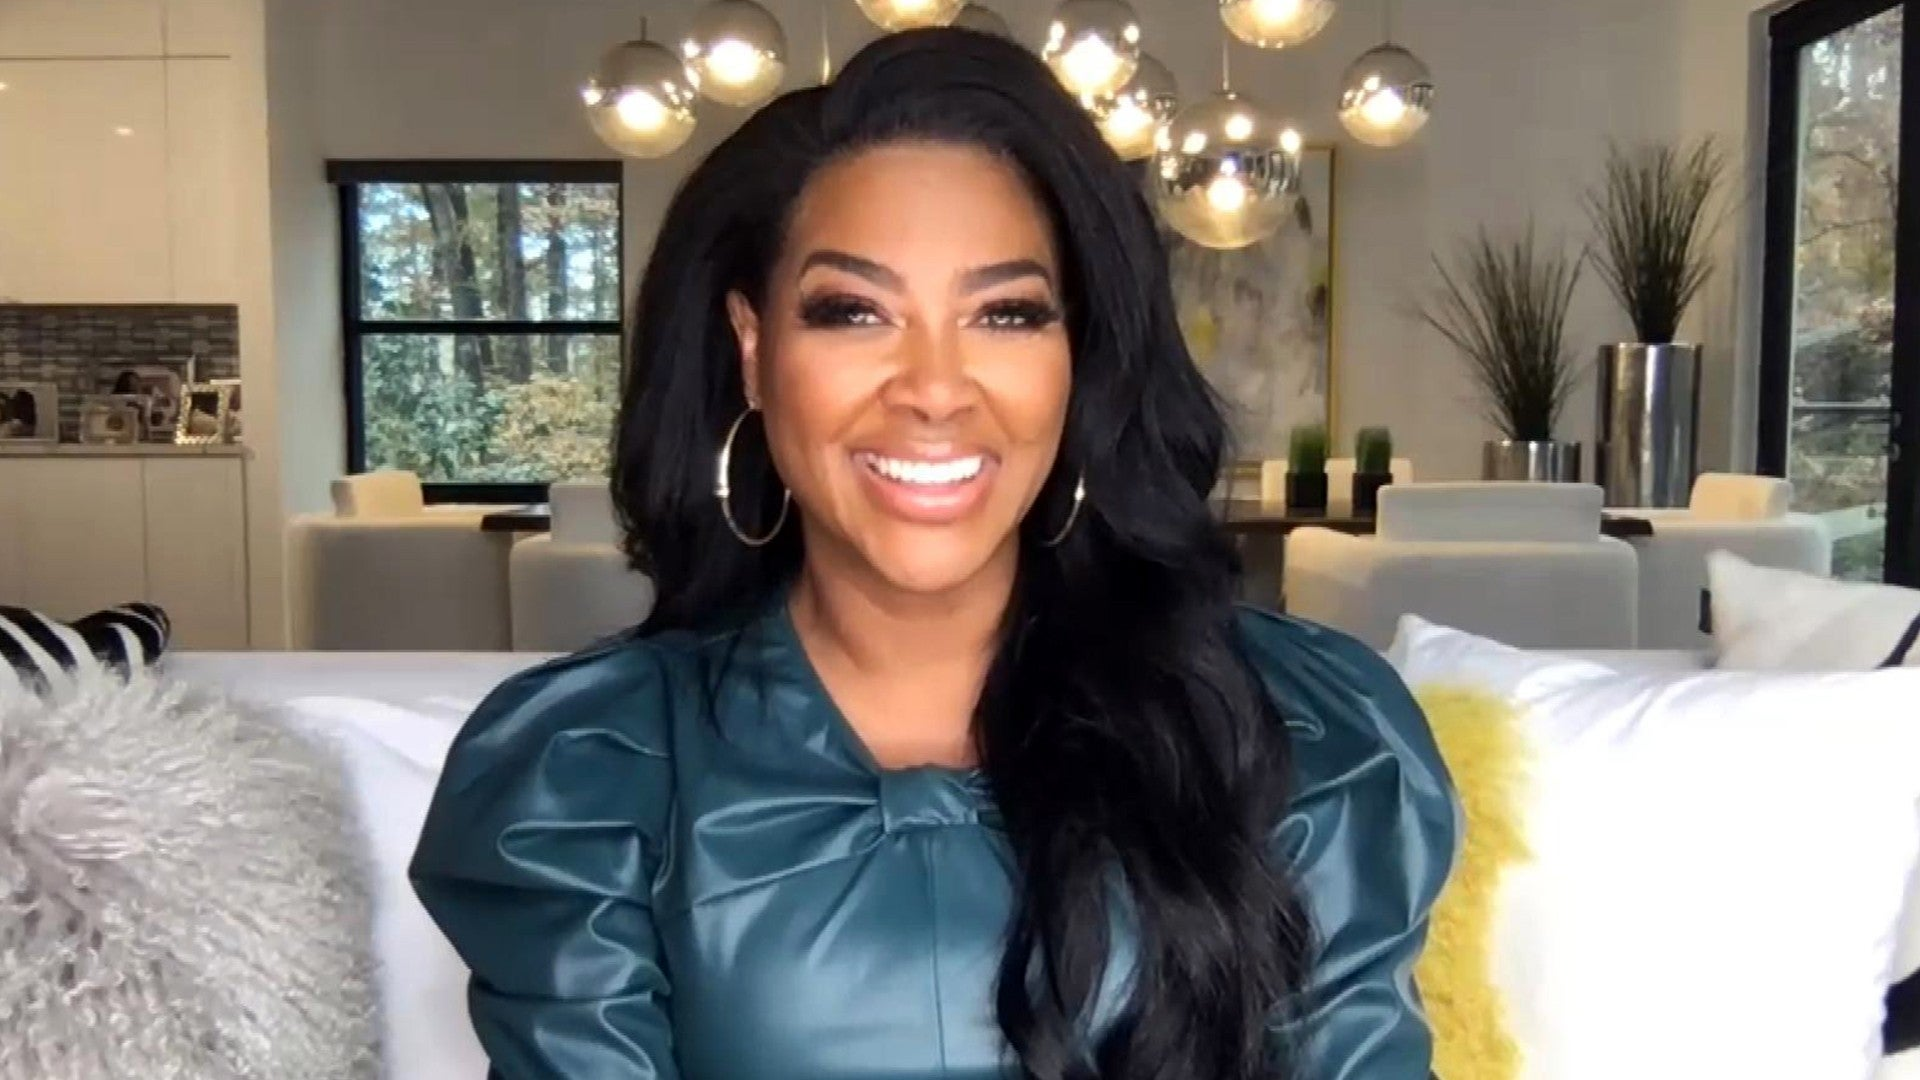 Rhoa S Kenya Moore On Stripper Gate Her Separation And Embracing Her Covid Curves Exclusive Entertainment Tonight